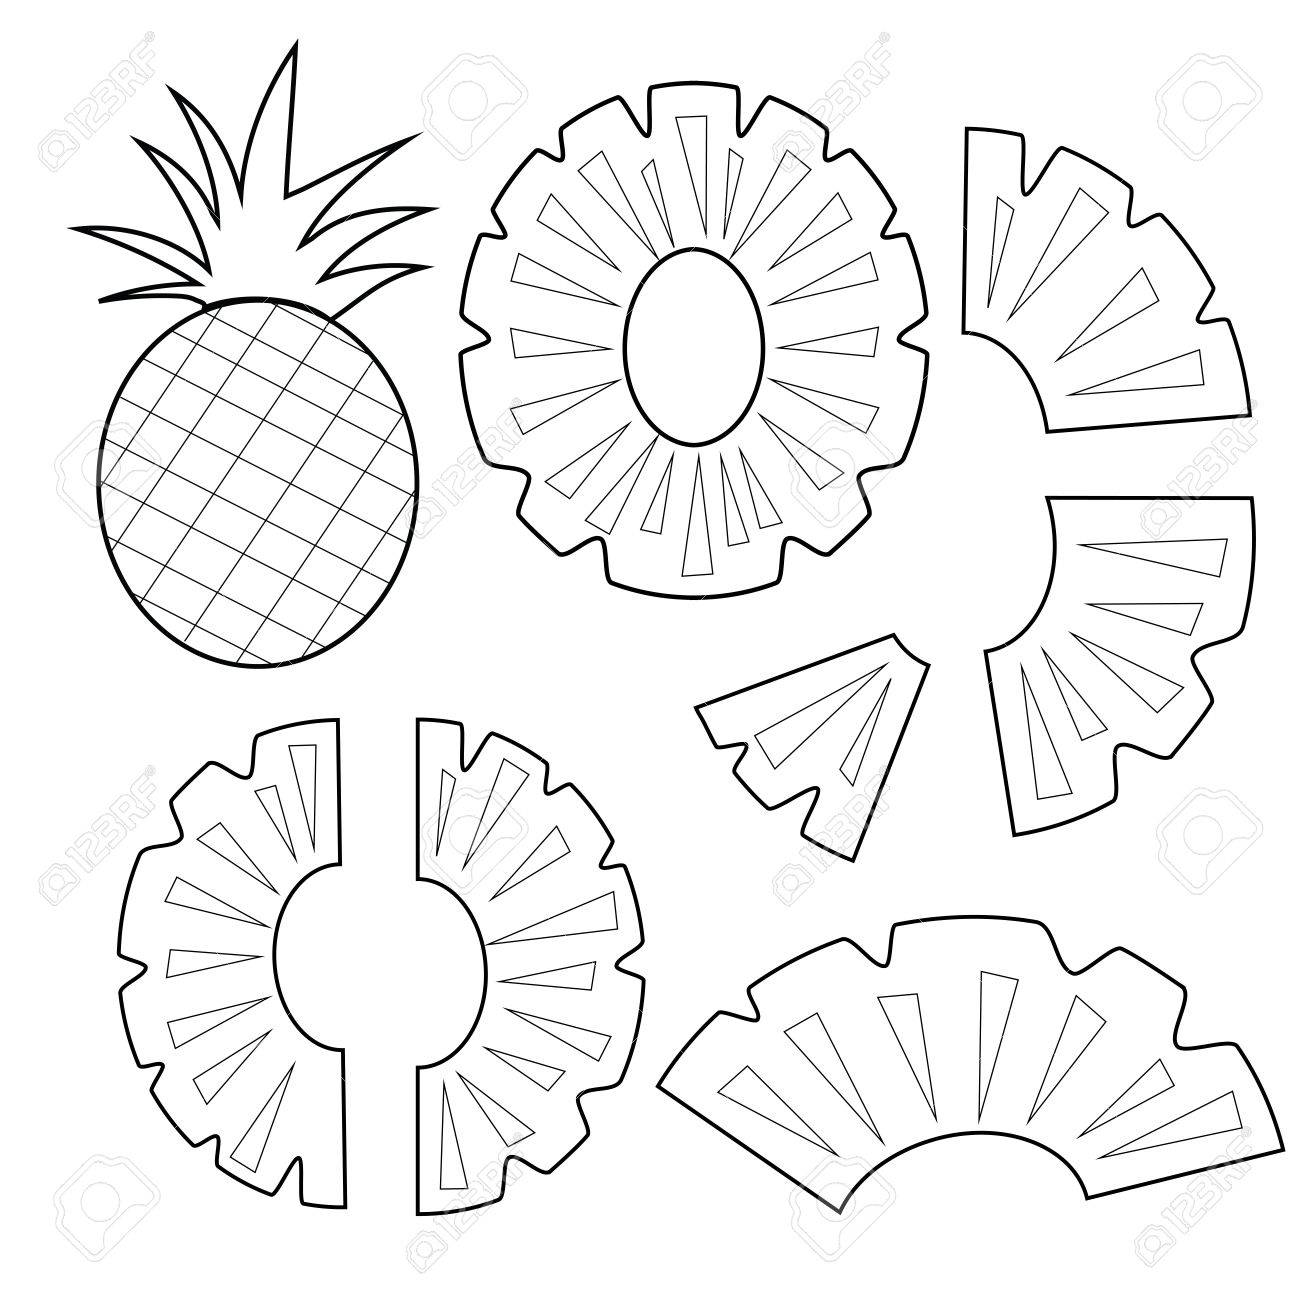 Ananas-Frucht Umriss Version Für Malbuch Vektor-Illustration ...